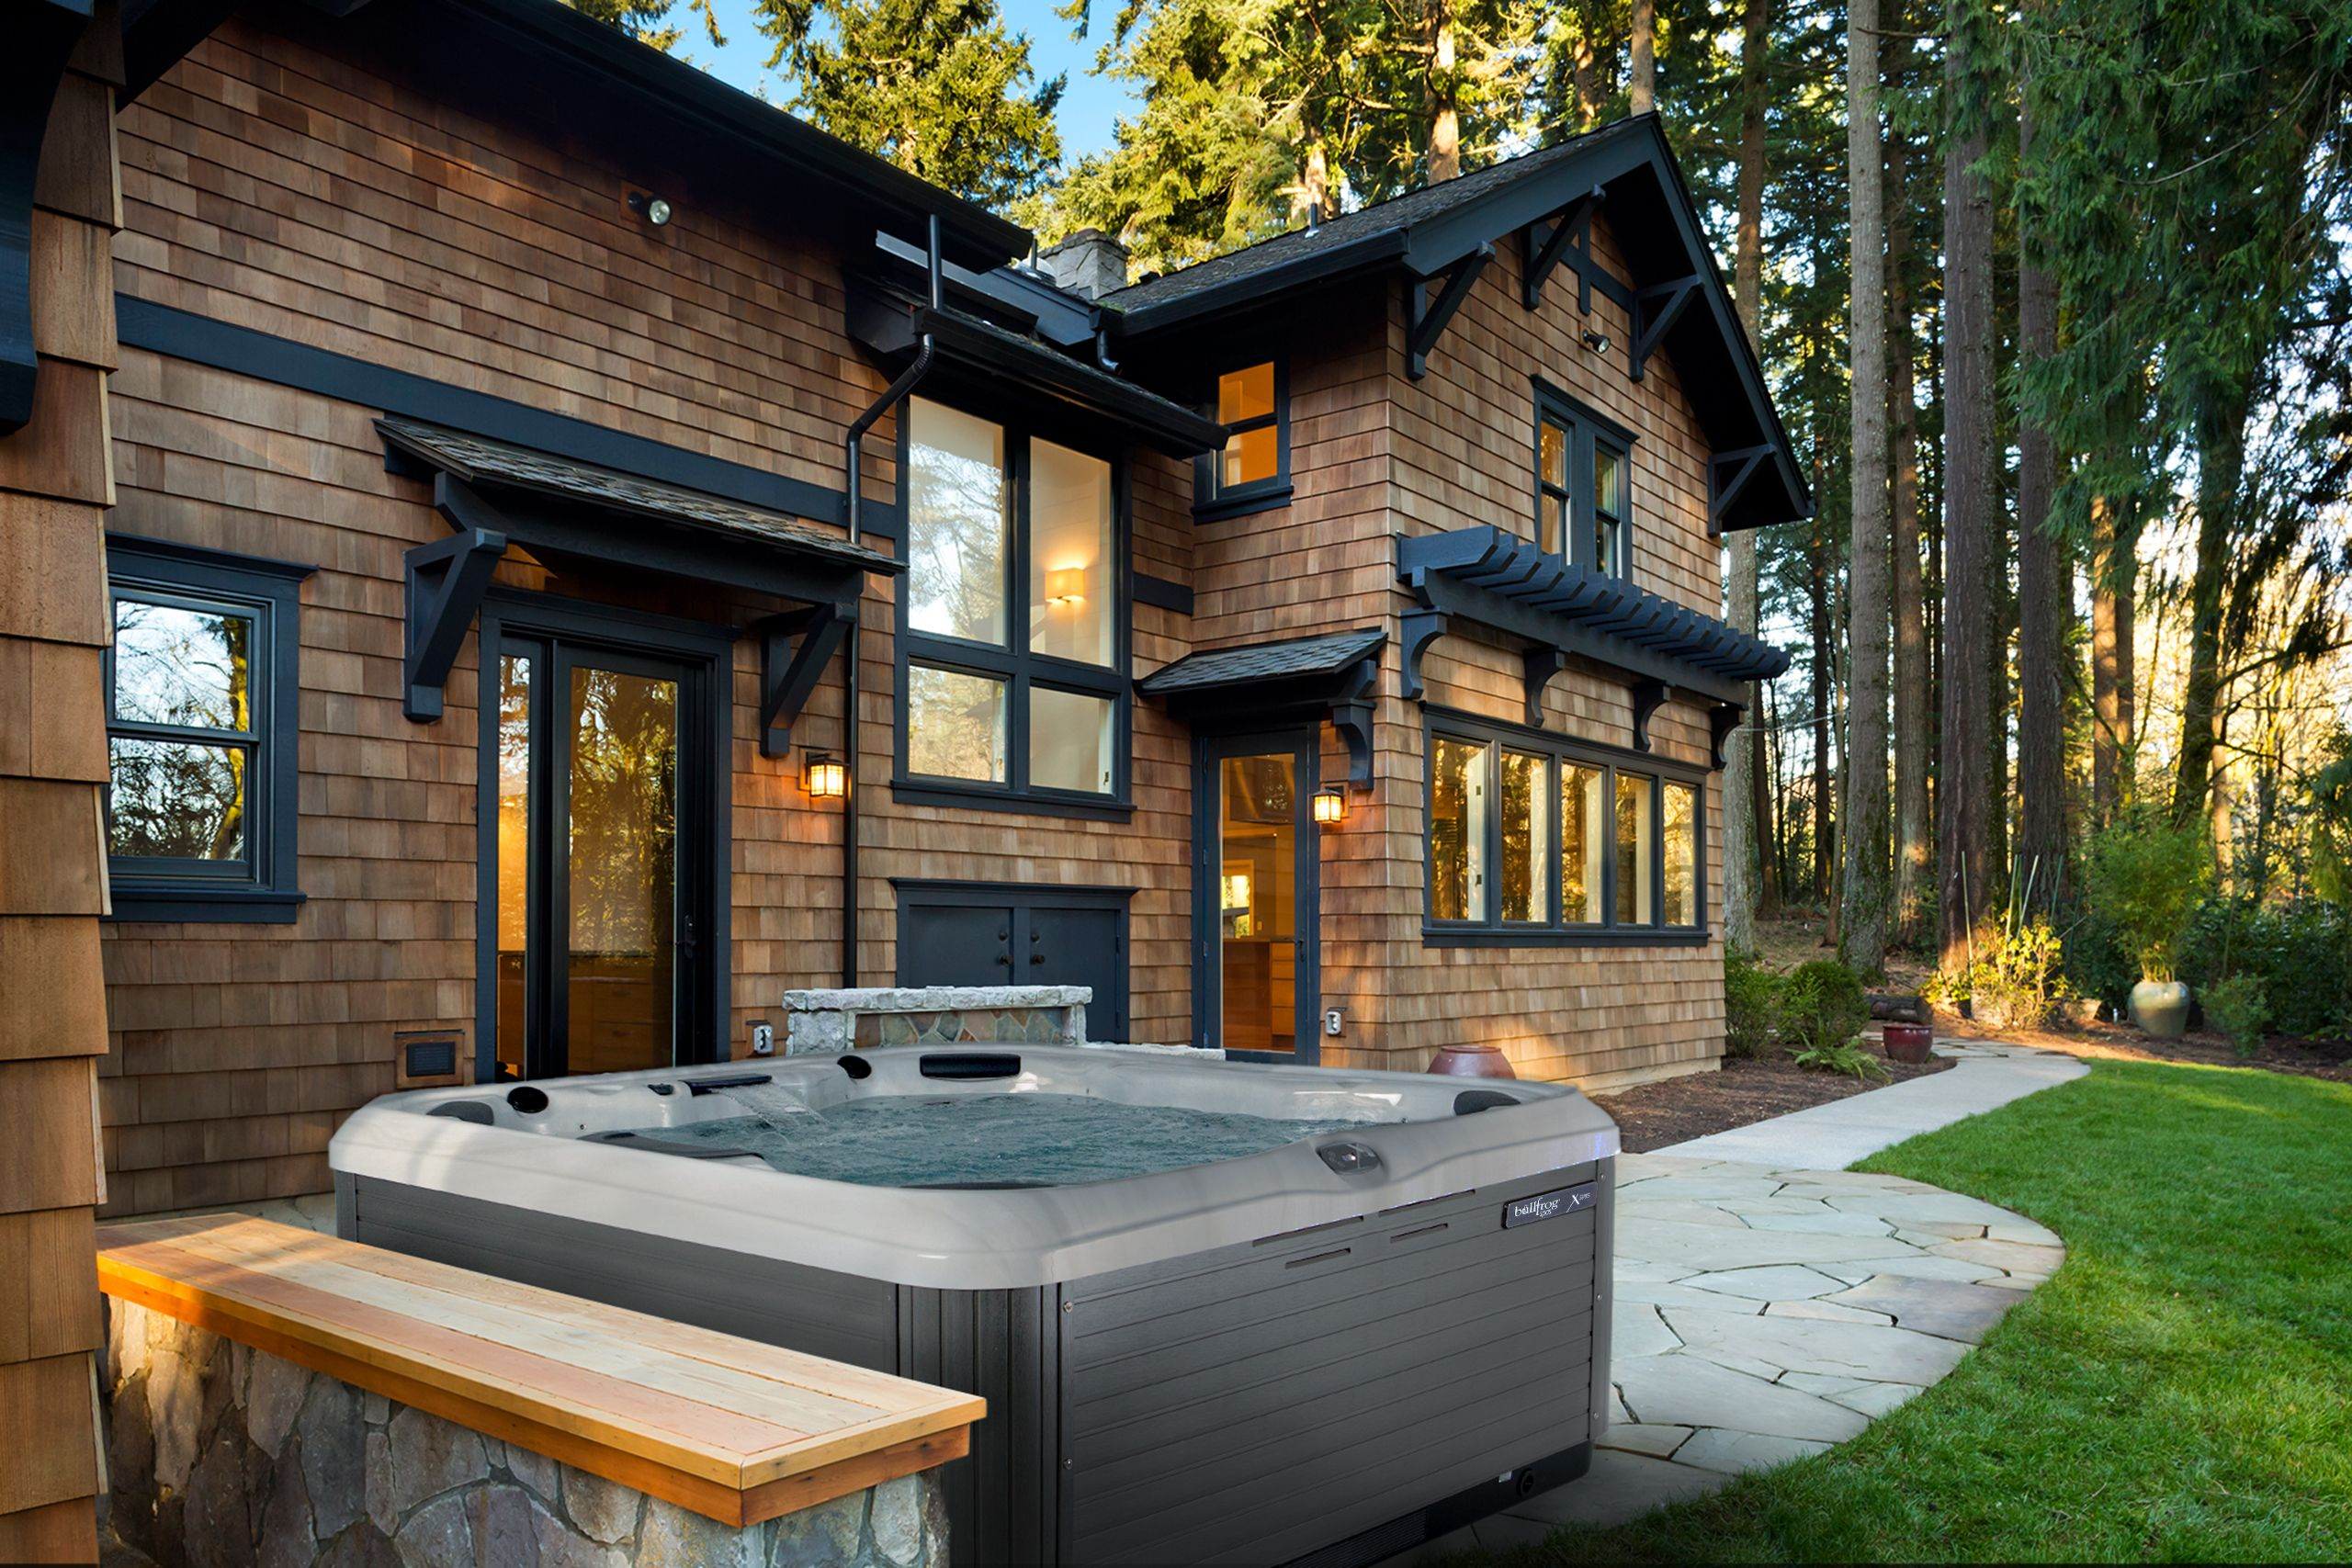 How To Buy A Hot Tub Hot Tub Buying Guide 2019